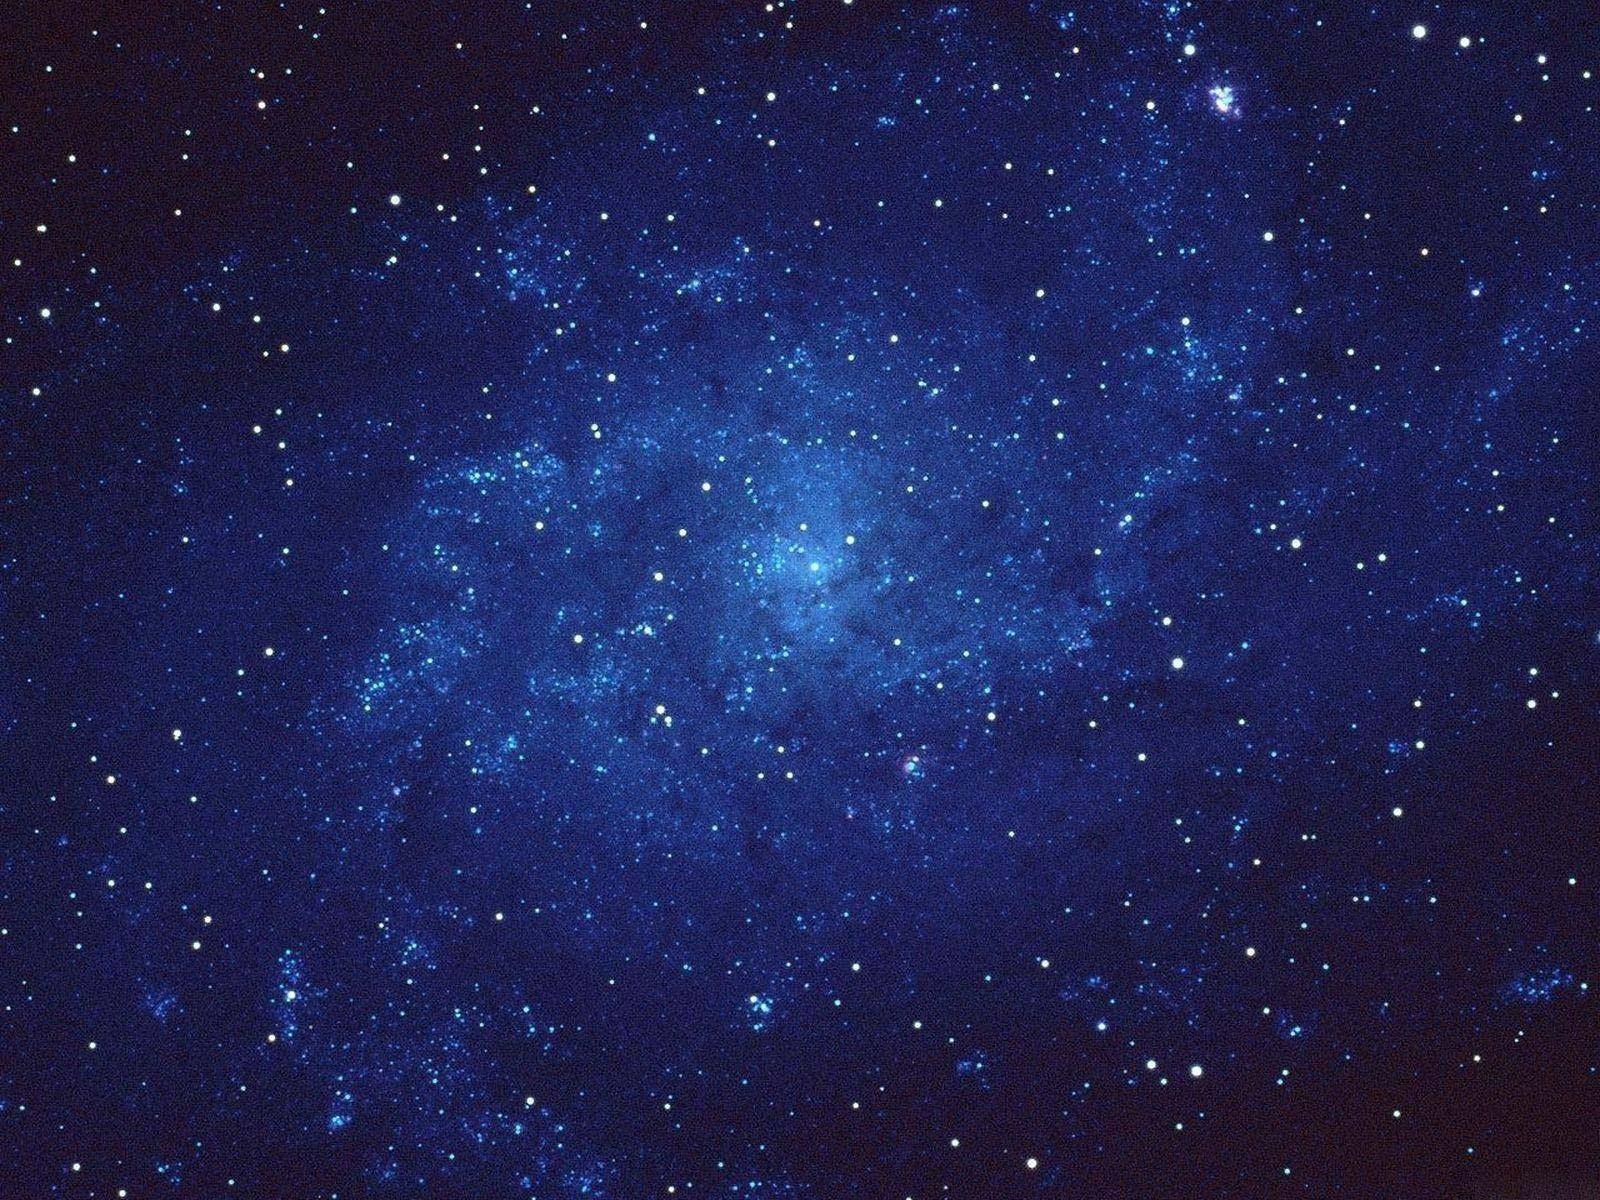 Starry Sky Backgrounds - Wallpaper Cave